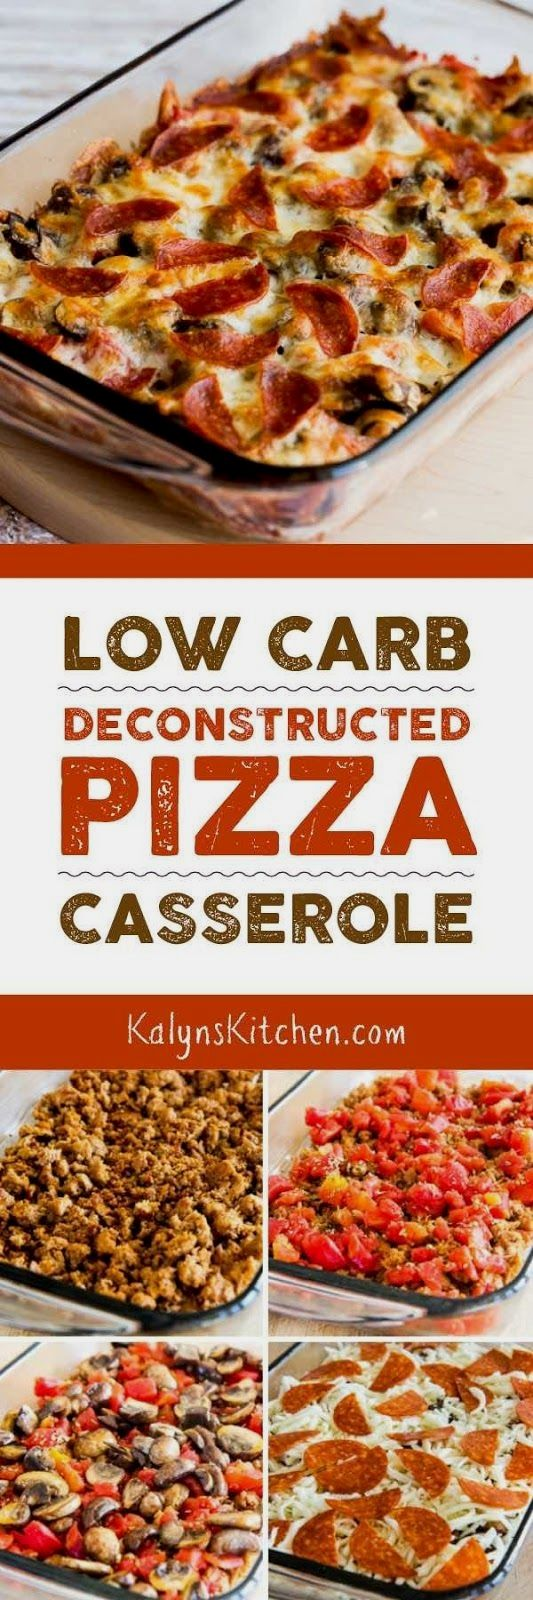 Let's start the year out right with this Low-Carb (and Gluten-Free) Deconstructed Pizza Casserole! This recipe is low-carb, Keto, low-glycemic, and gluten-free; use the Diet-Type Index to find more…MoreMore